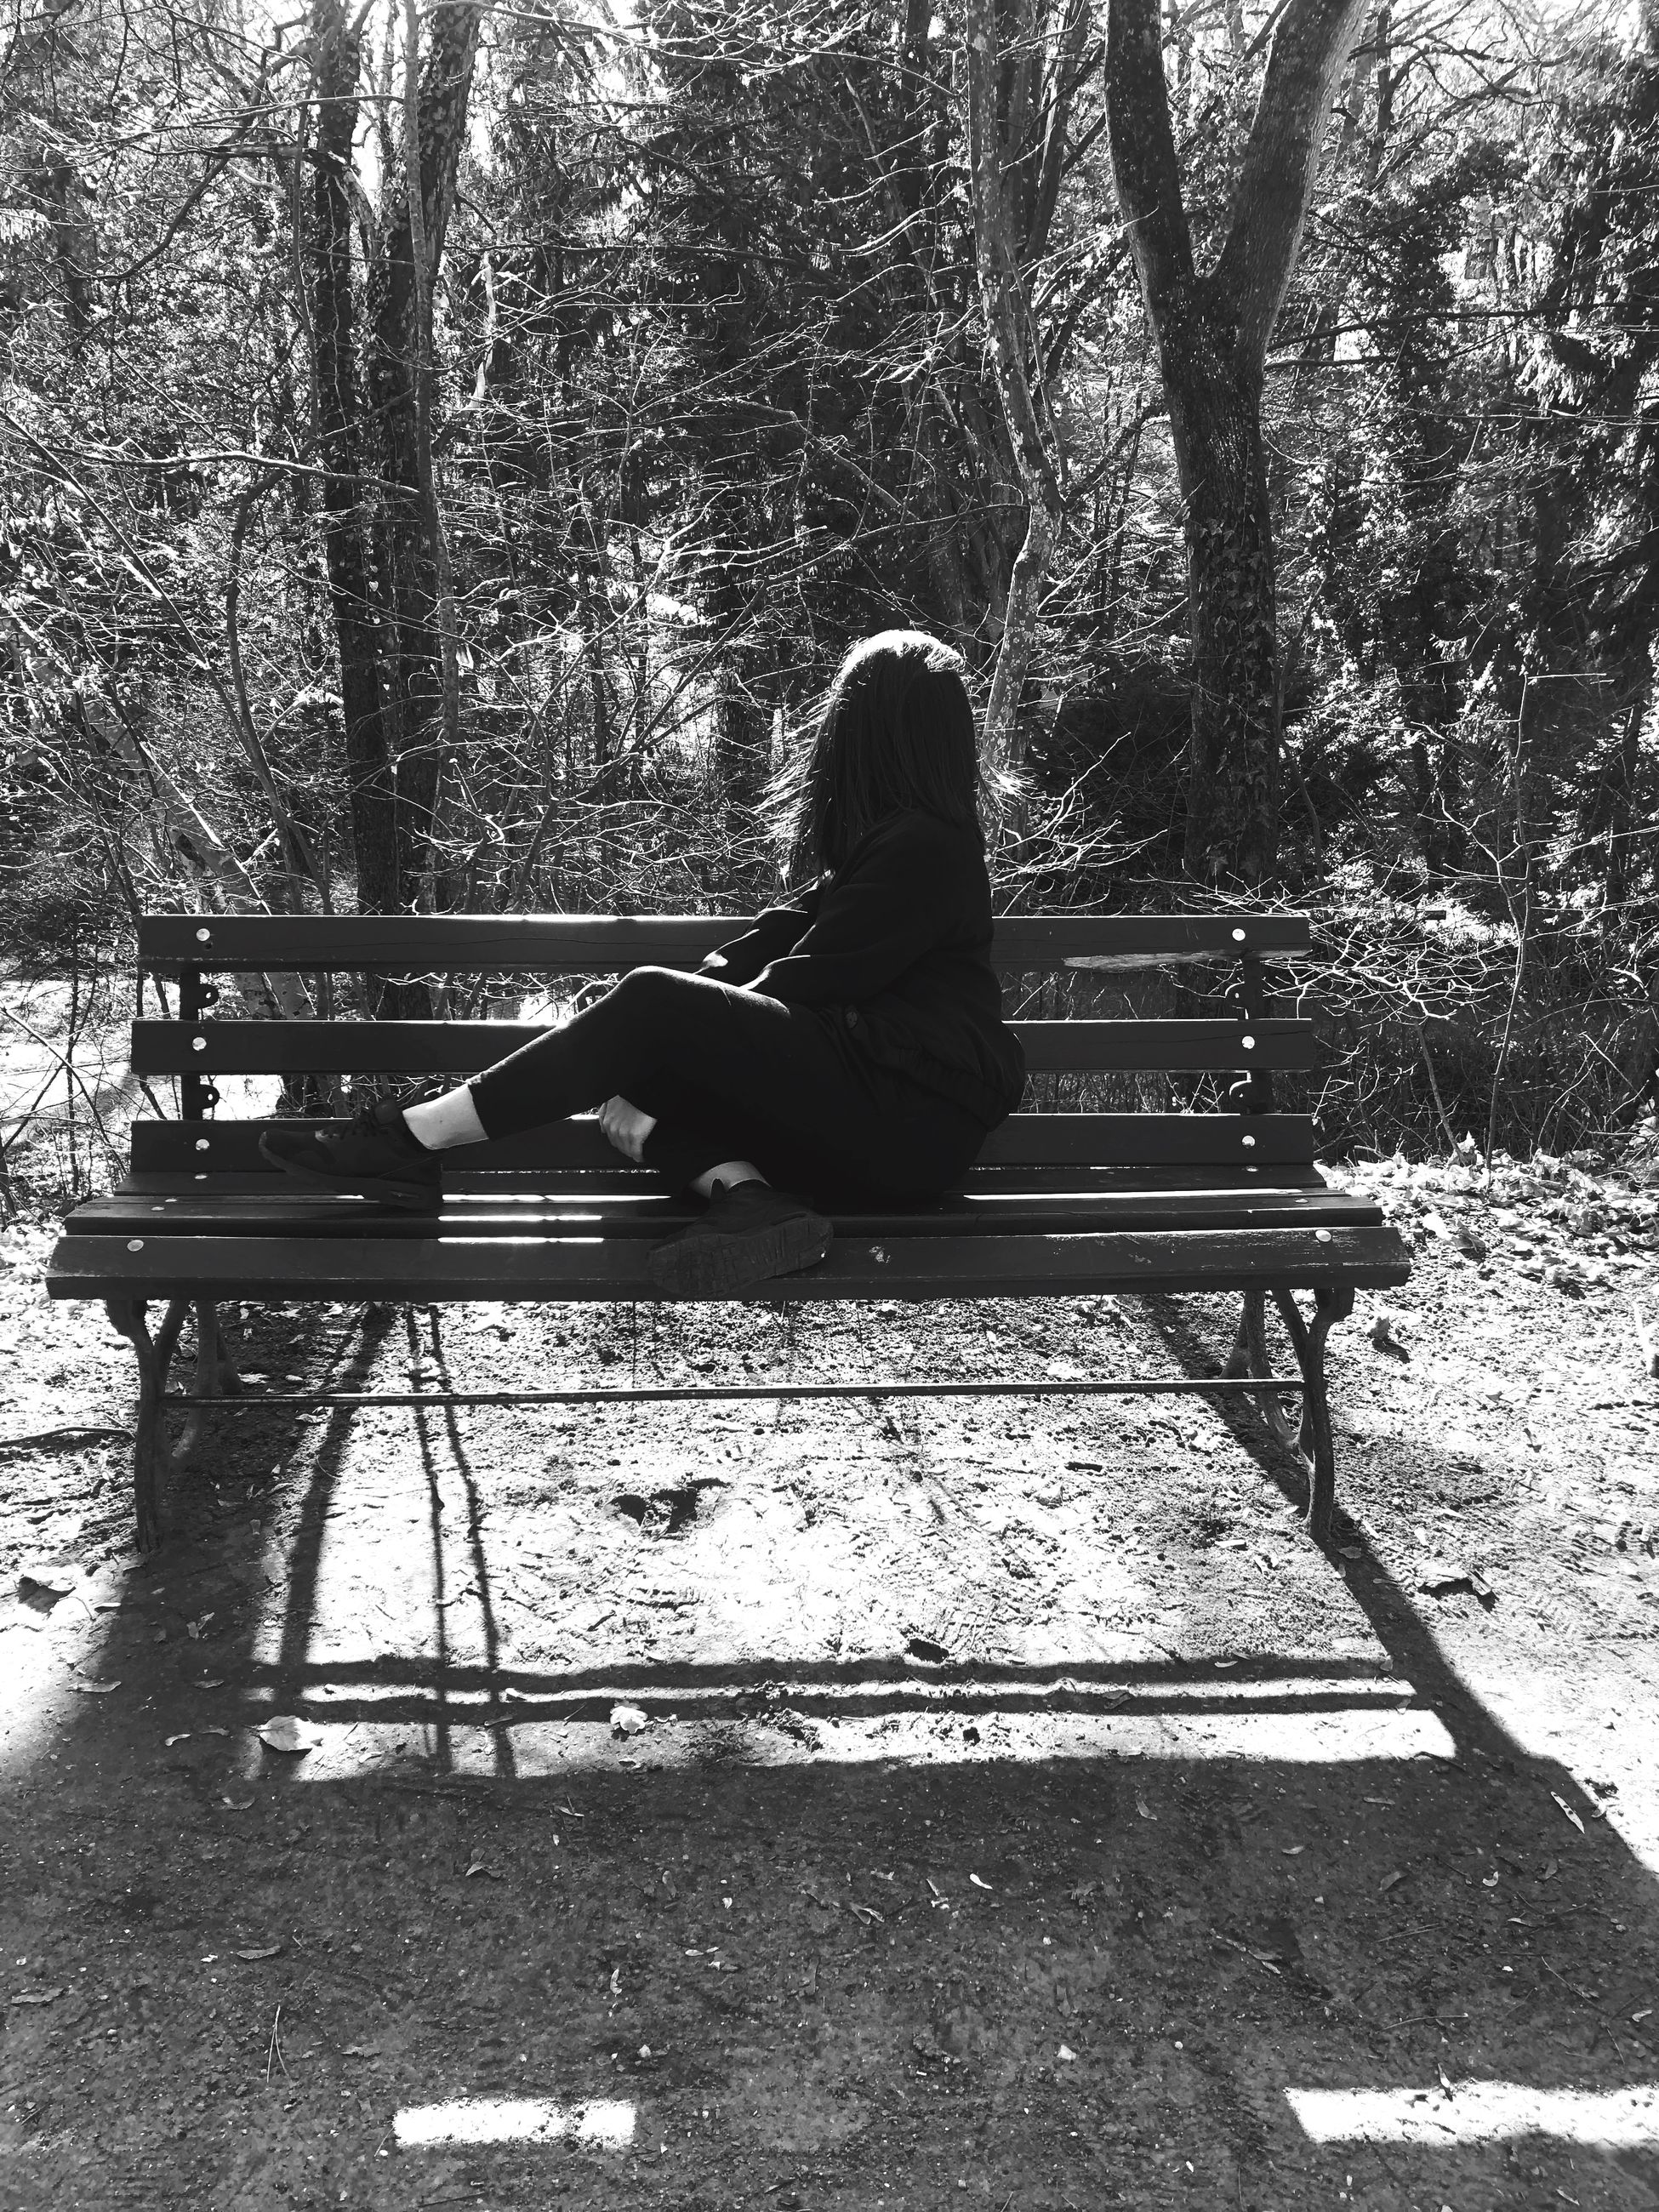 sitting, one person, tree, bench, full length, real people, leisure activity, lifestyles, plant, nature, park, day, relaxation, seat, women, adult, park - man made space, outdoors, casual clothing, park bench, contemplation, hairstyle, warm clothing